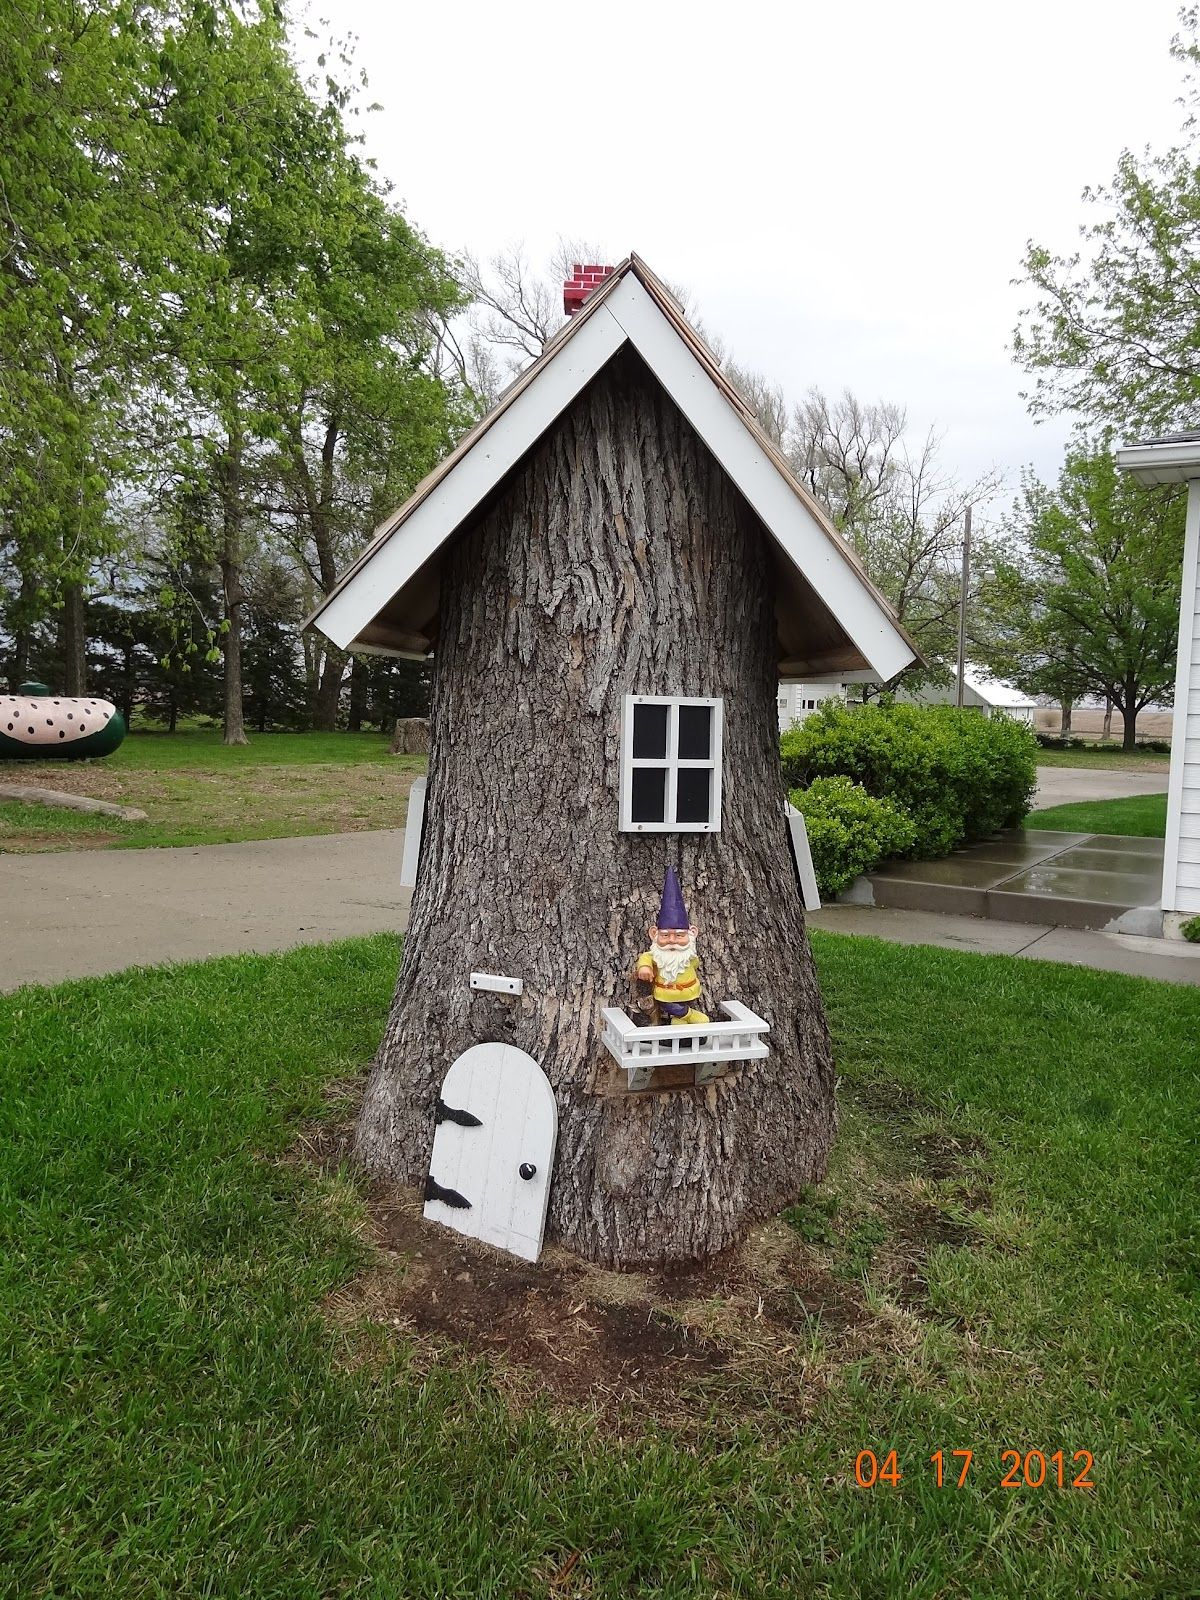 10 ways to decorate (hide) a tree stump in your yard